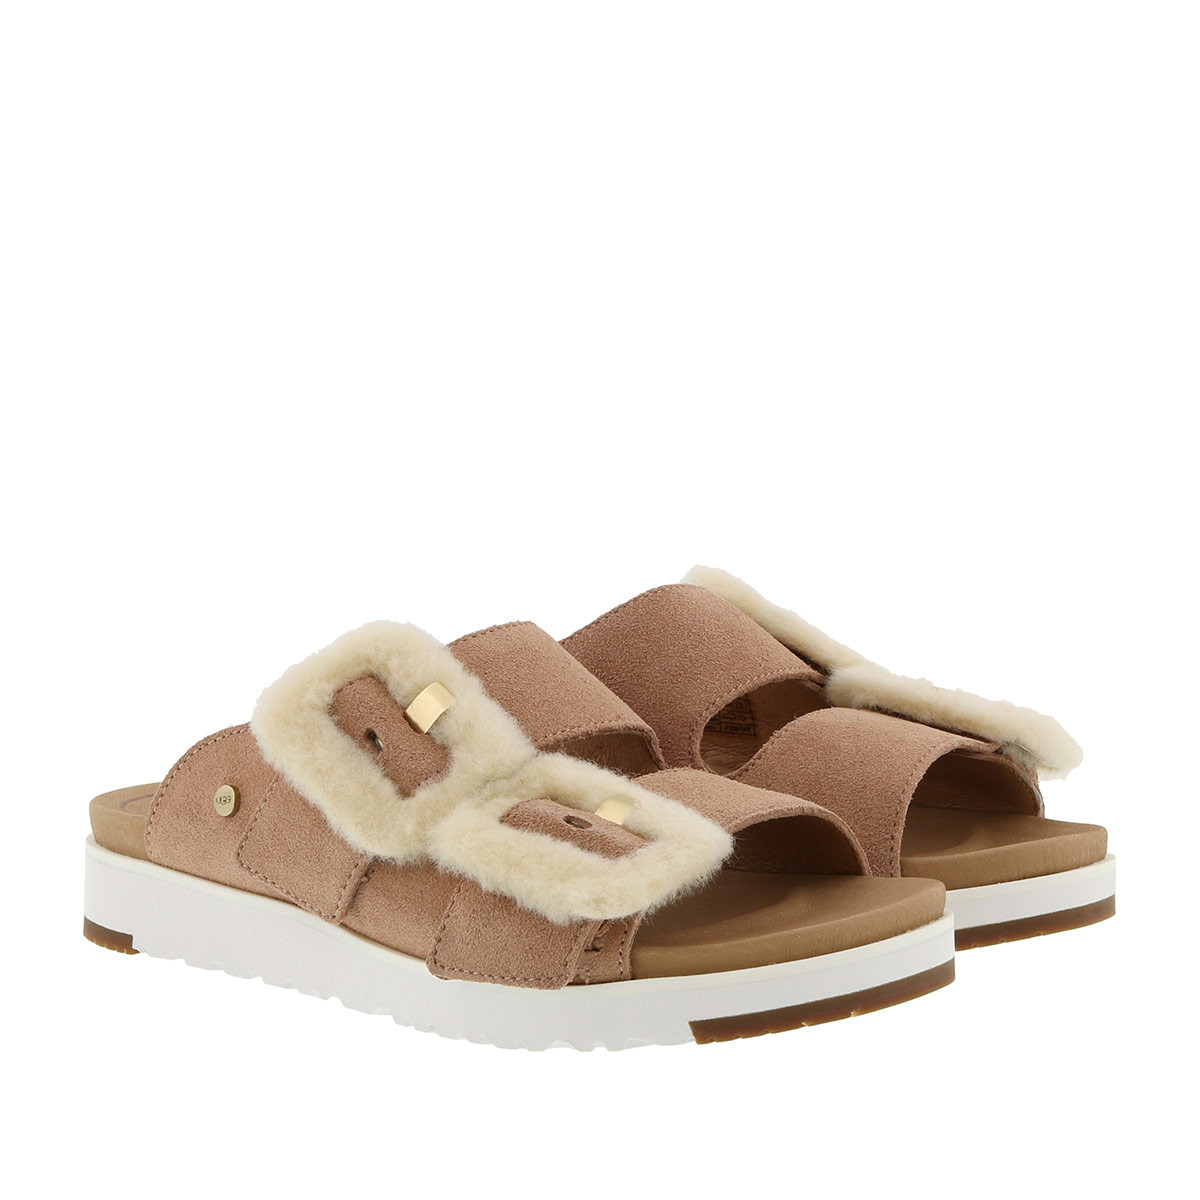 UGG Sandalen - W Fluff Indio Sandals Arroyo - in braun - für Damen